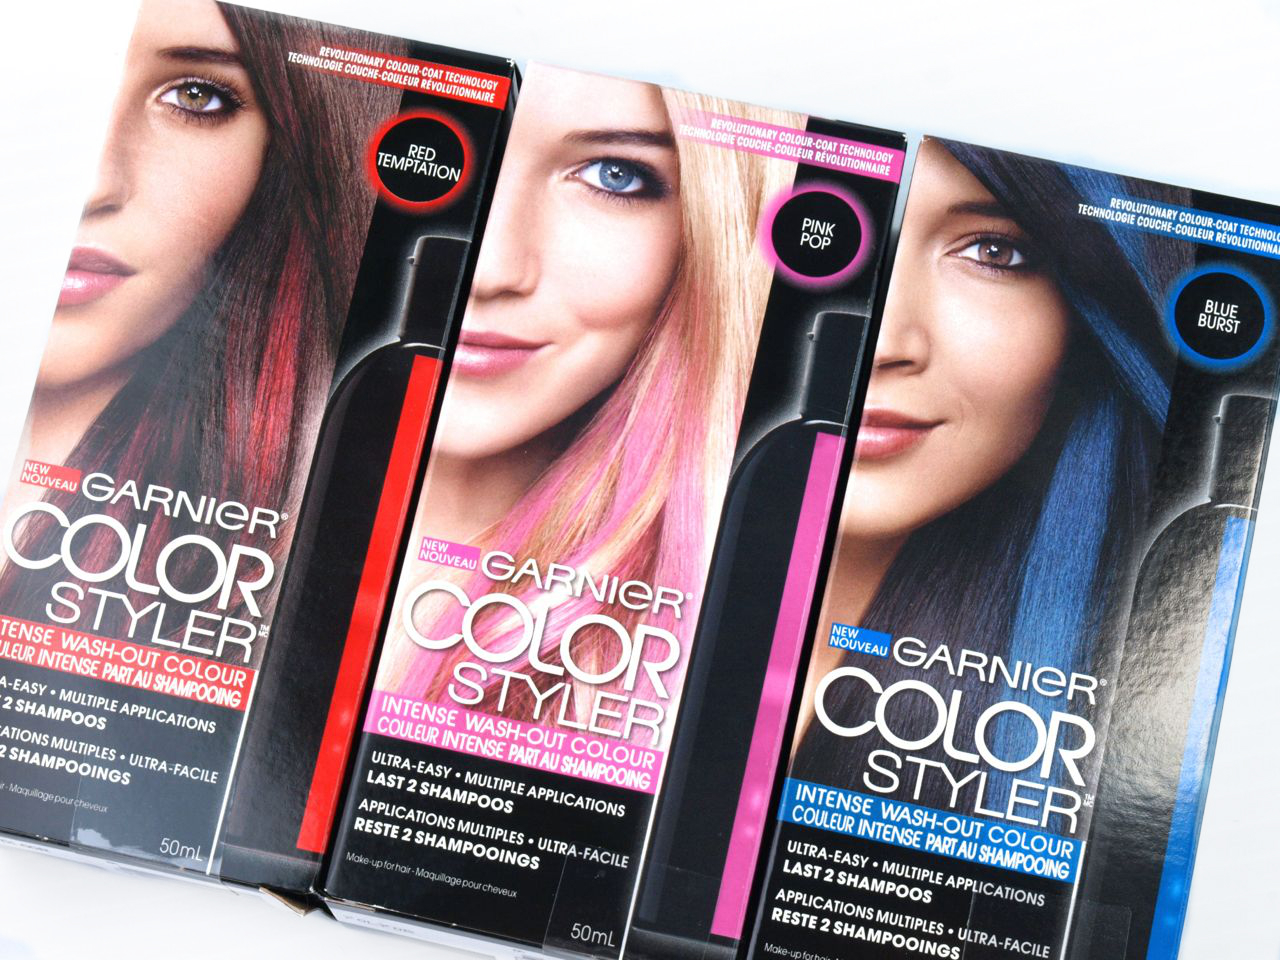 Garnier Color Styler Intense Wash-Out Color: Review | The ...